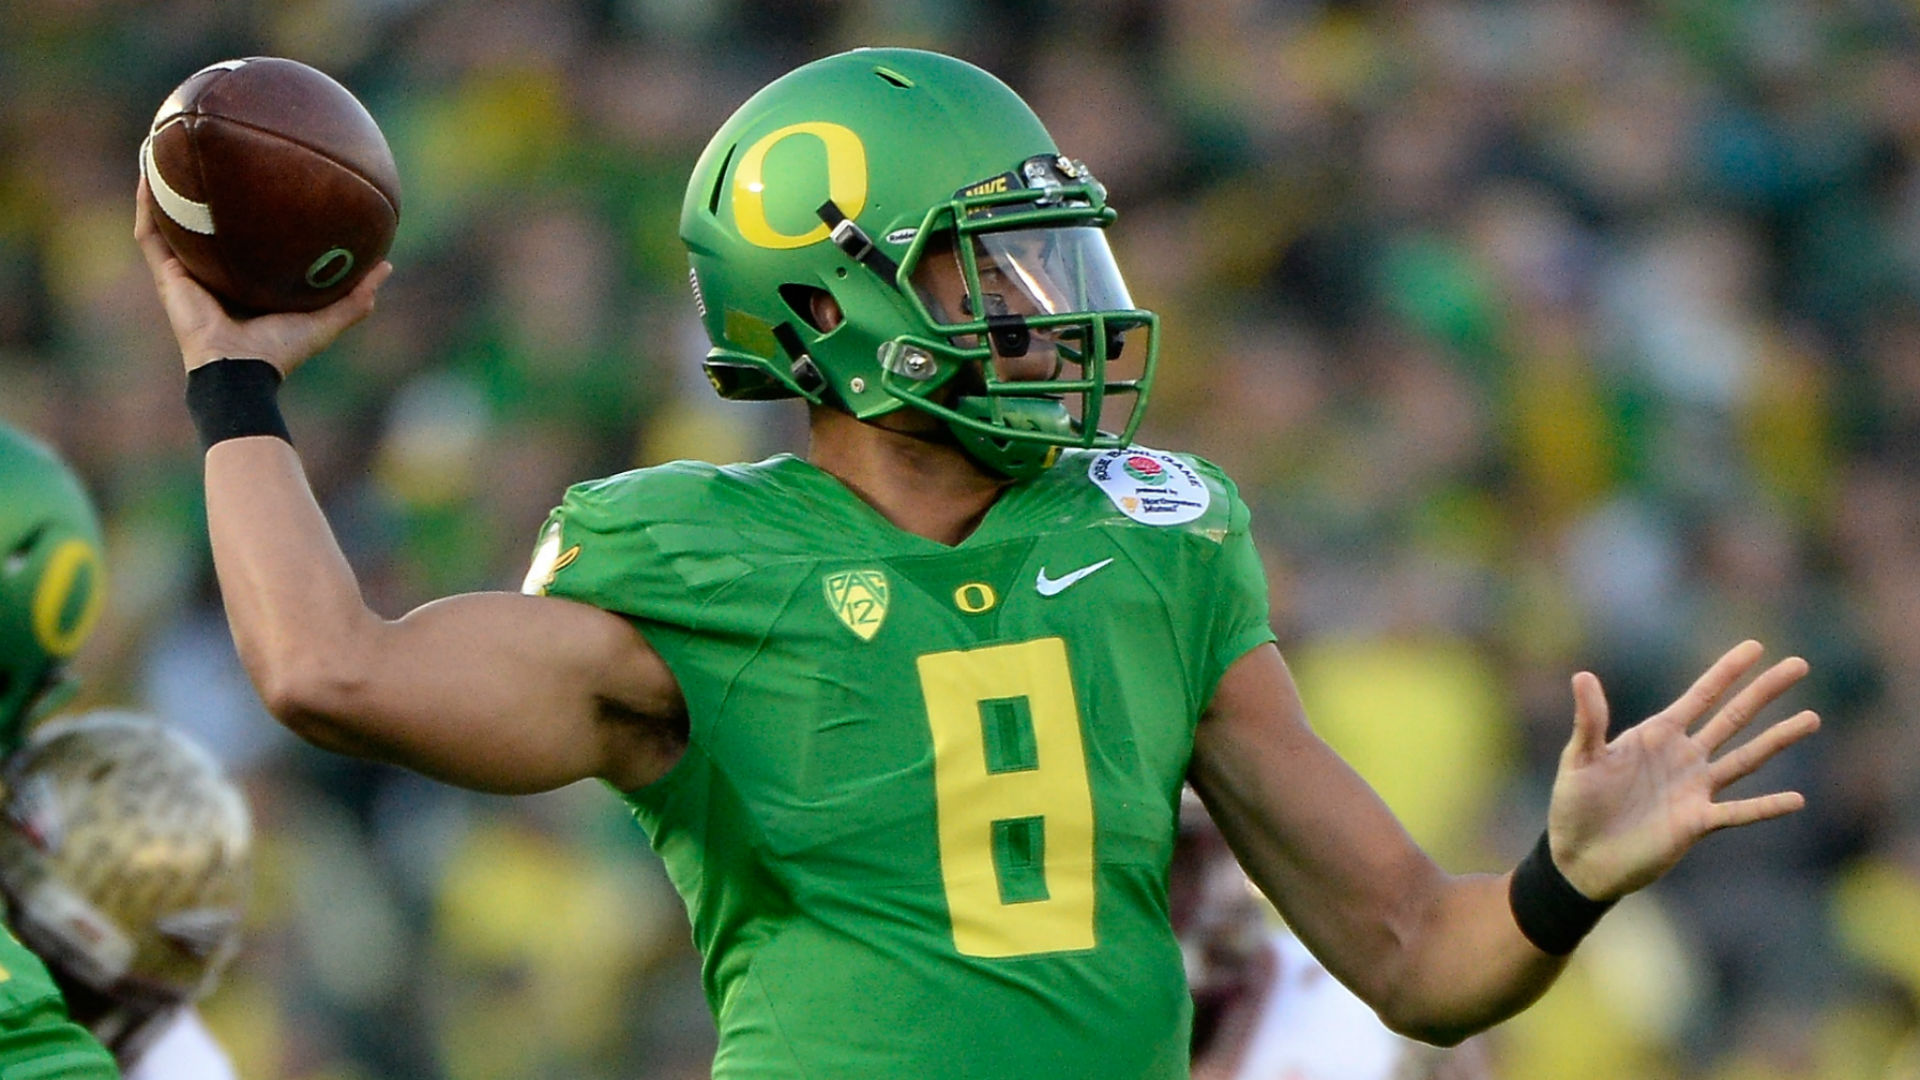 Ohio State vs. Oregon props - Mariota, Jones set to star in title game